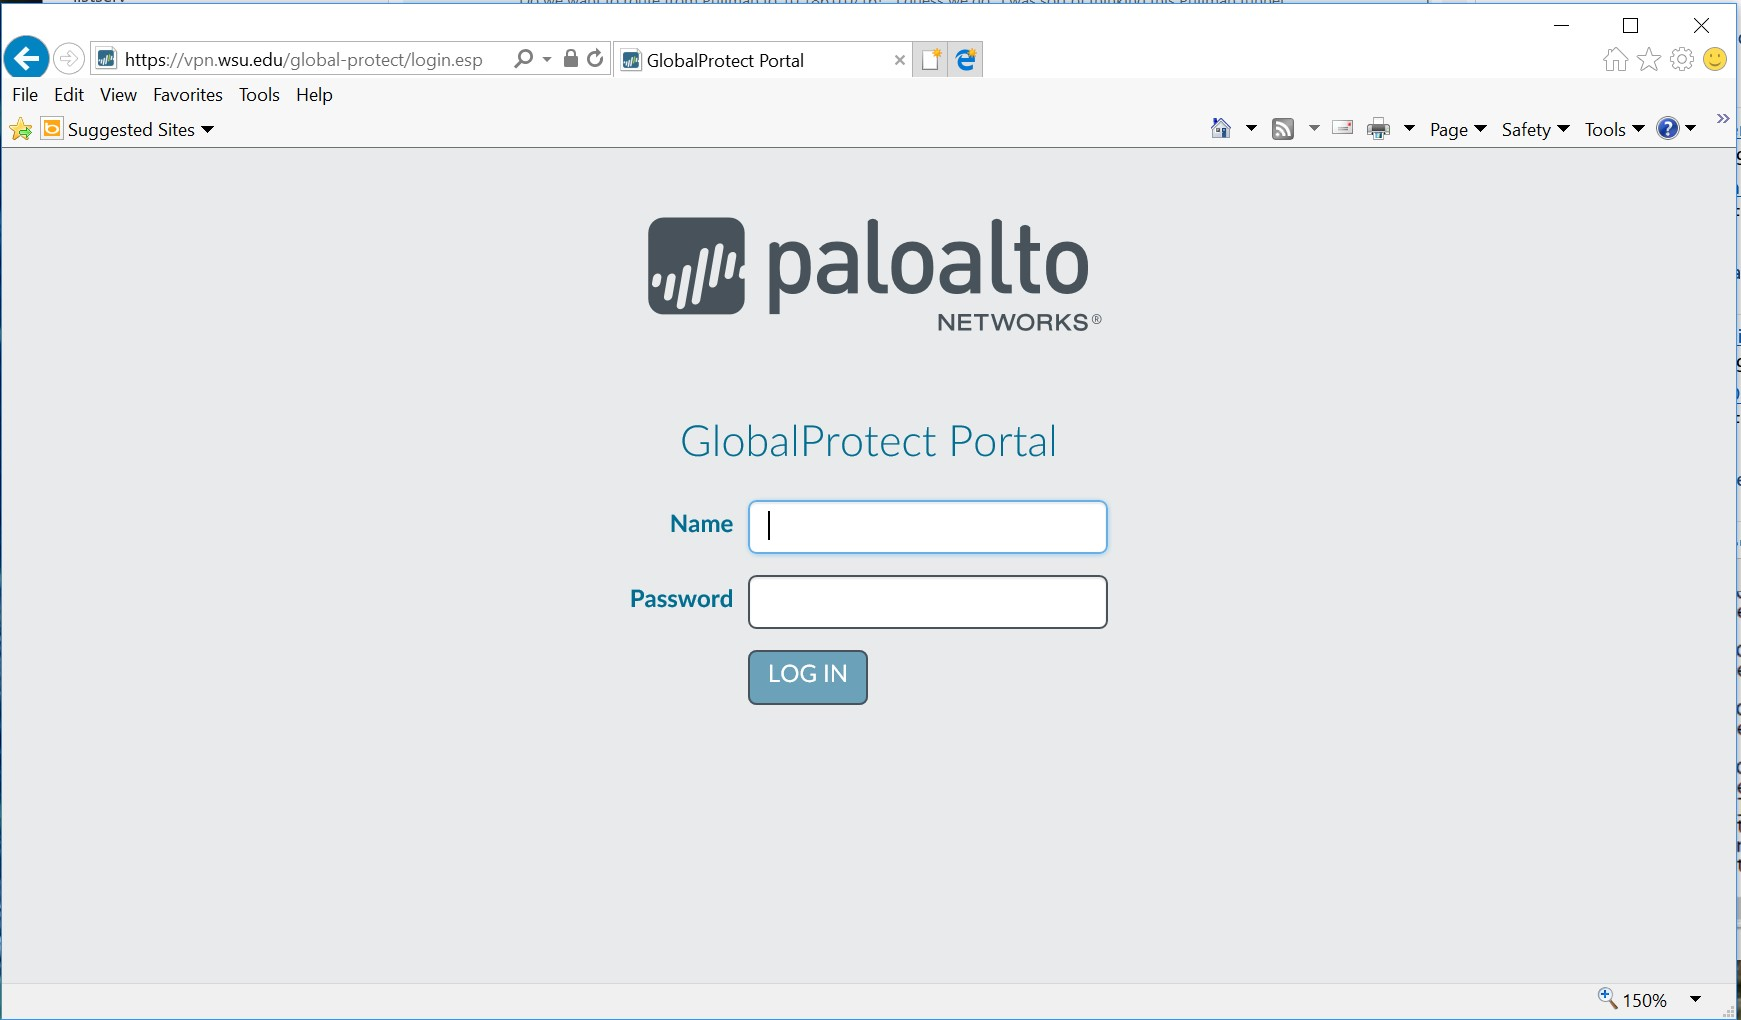 Paloalto Login Screen